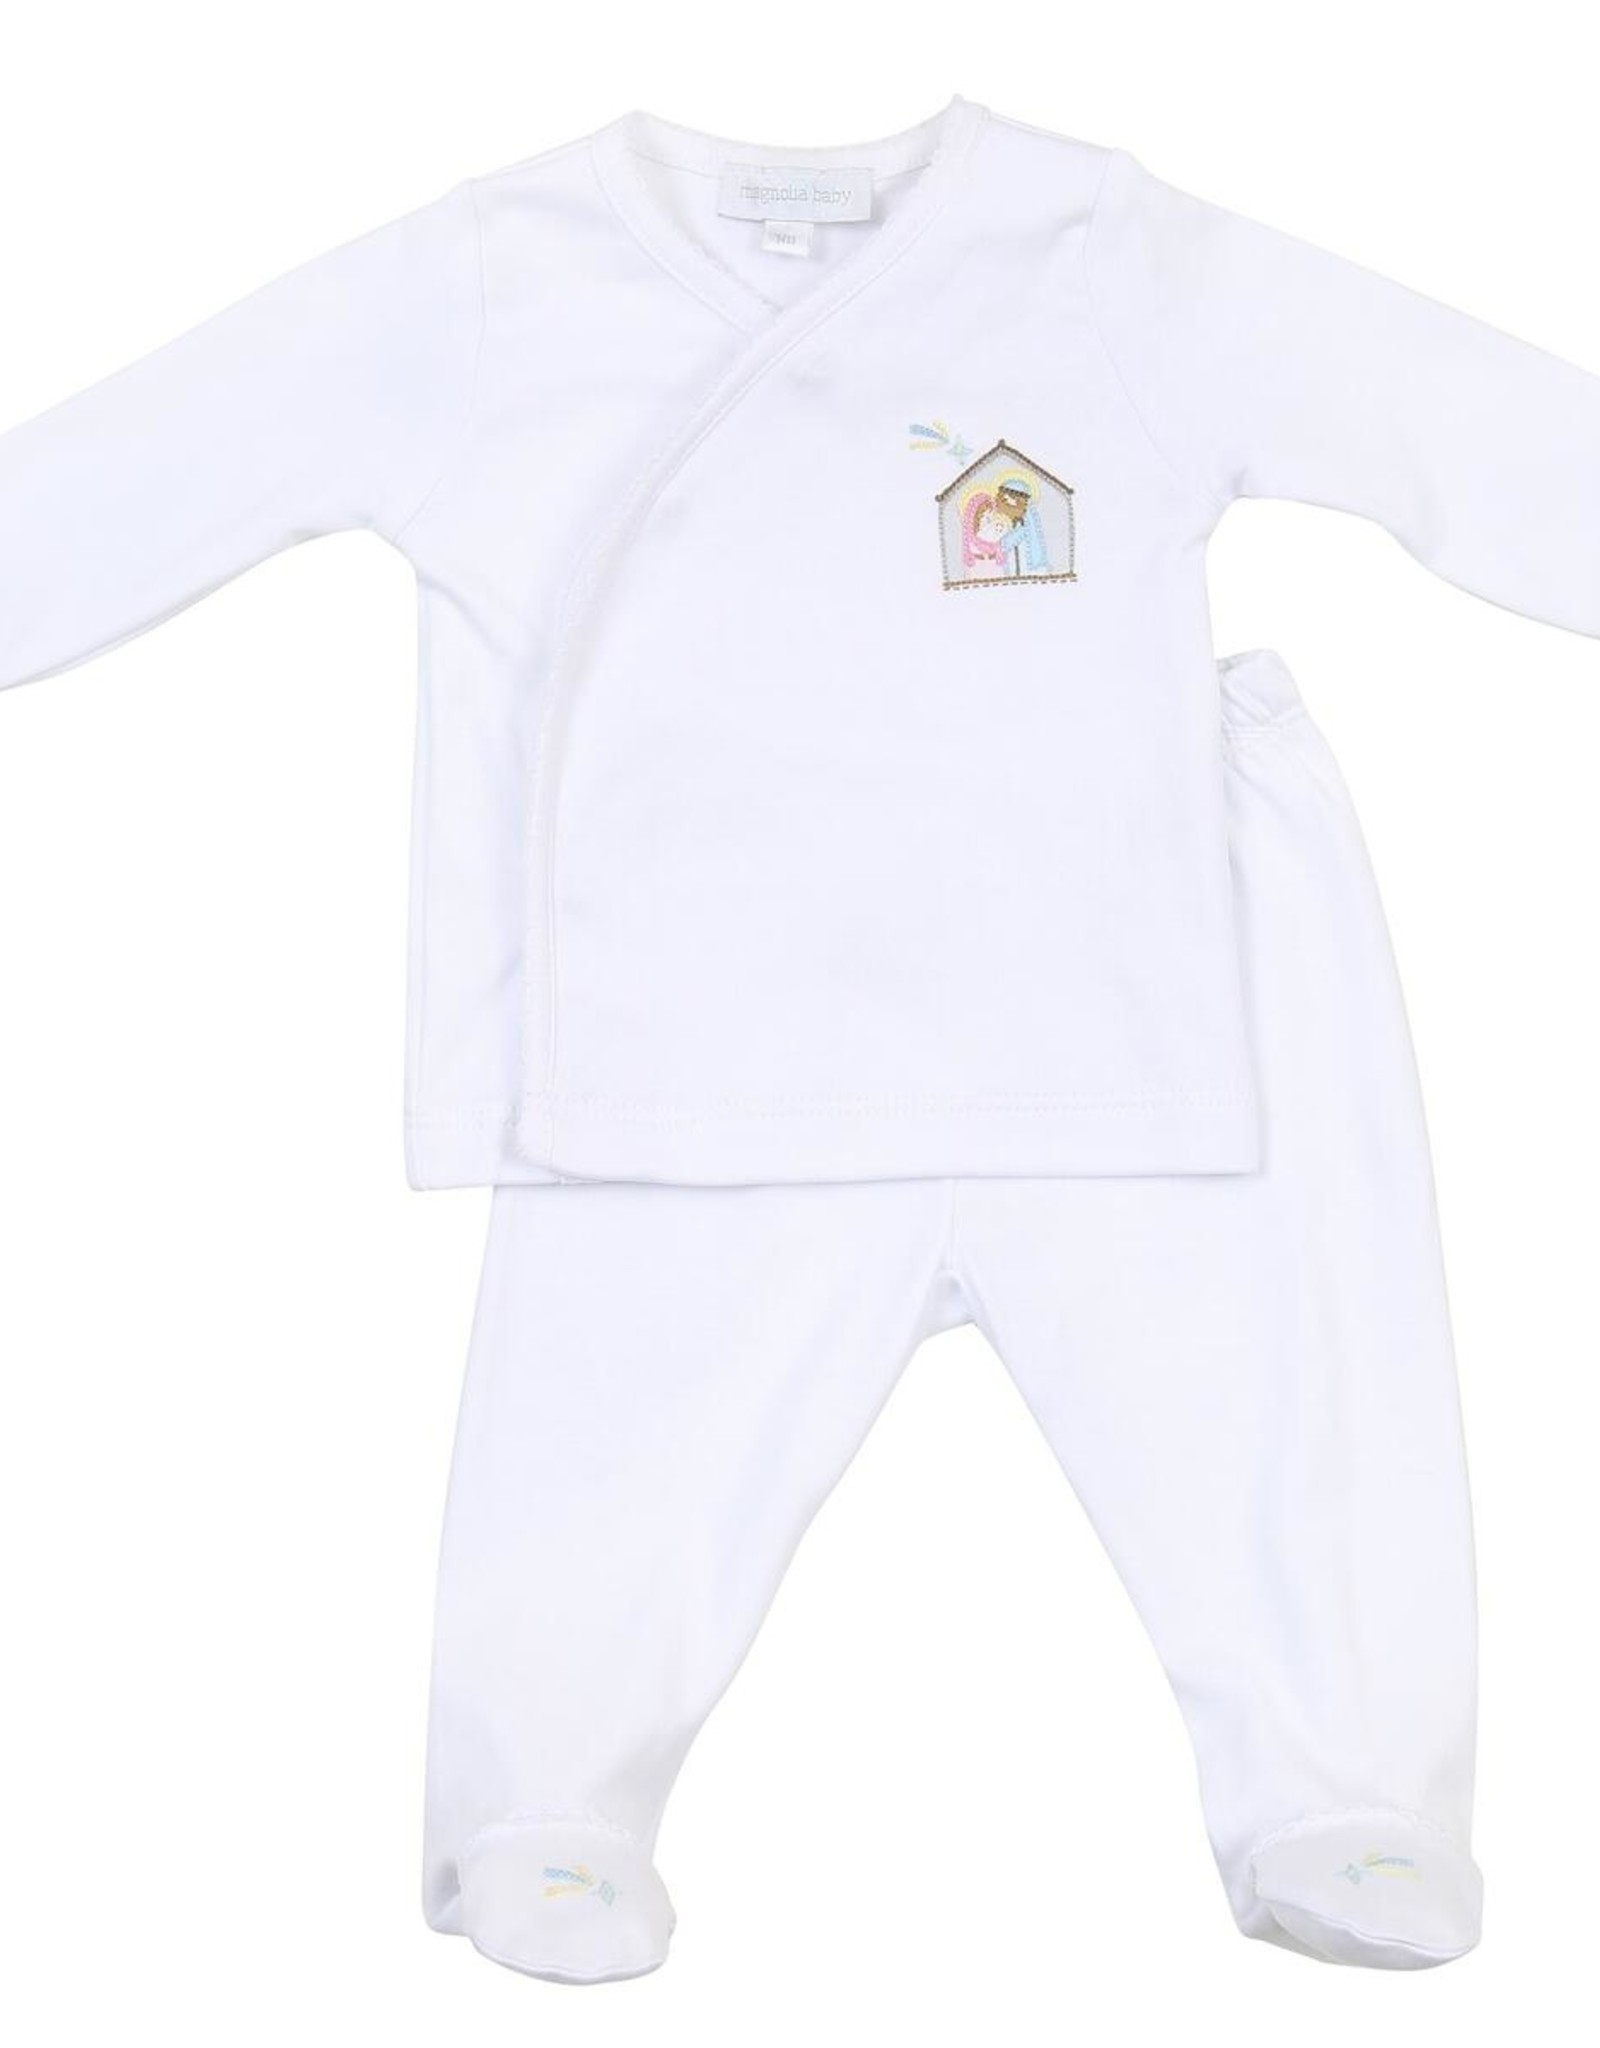 magnolia baby Silent Night White Embroidered Footed Pant Set